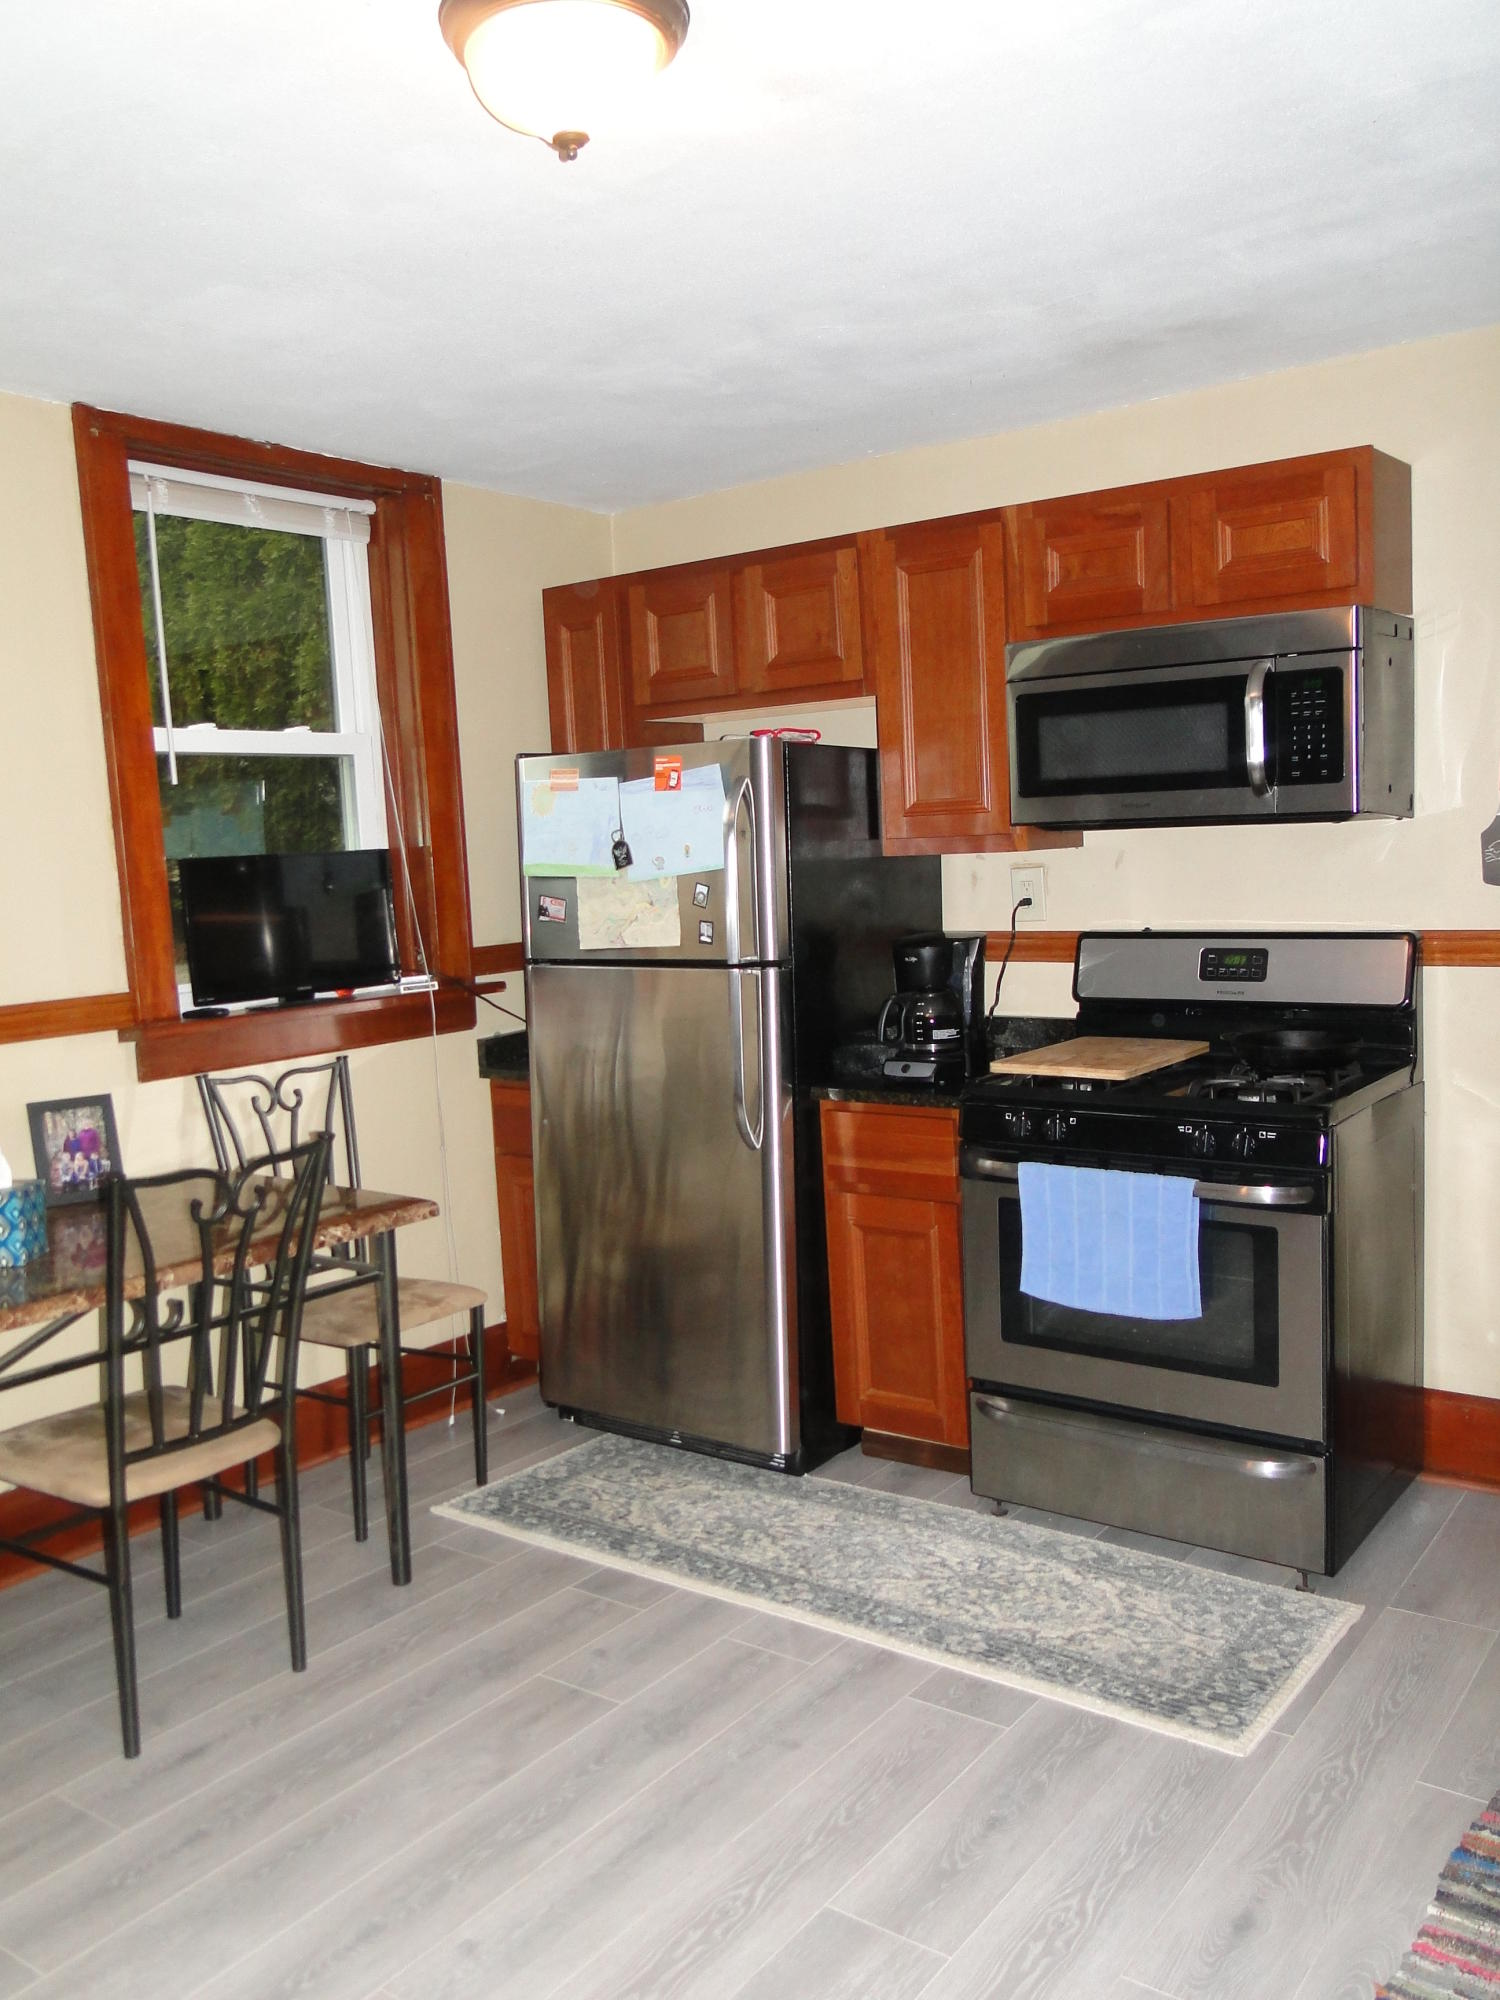 3644 Pulaski Ave, Cudahy, Wisconsin 53110, 1 Bedroom Bedrooms, ,1 BathroomBathrooms,Single-family,For Sale,Pulaski Ave,1721733